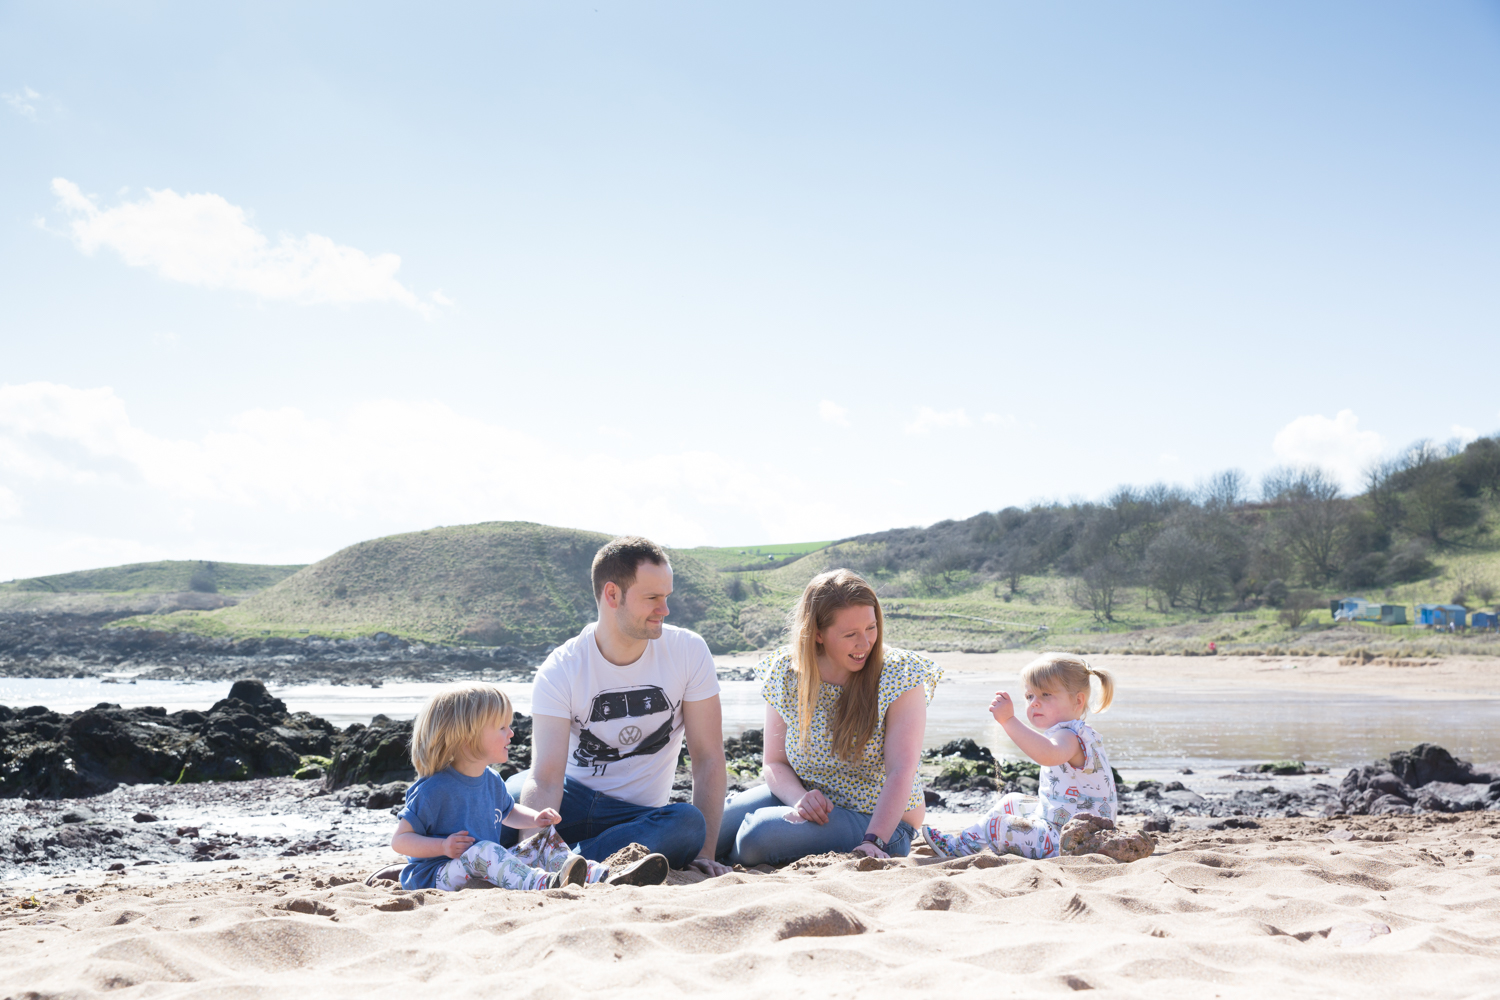 PICTORIAL_BERWICK_pre-wedding-family-couple-shoot-beach-coldingham-bay-birthday-dogs-grandparents-0535.jpg